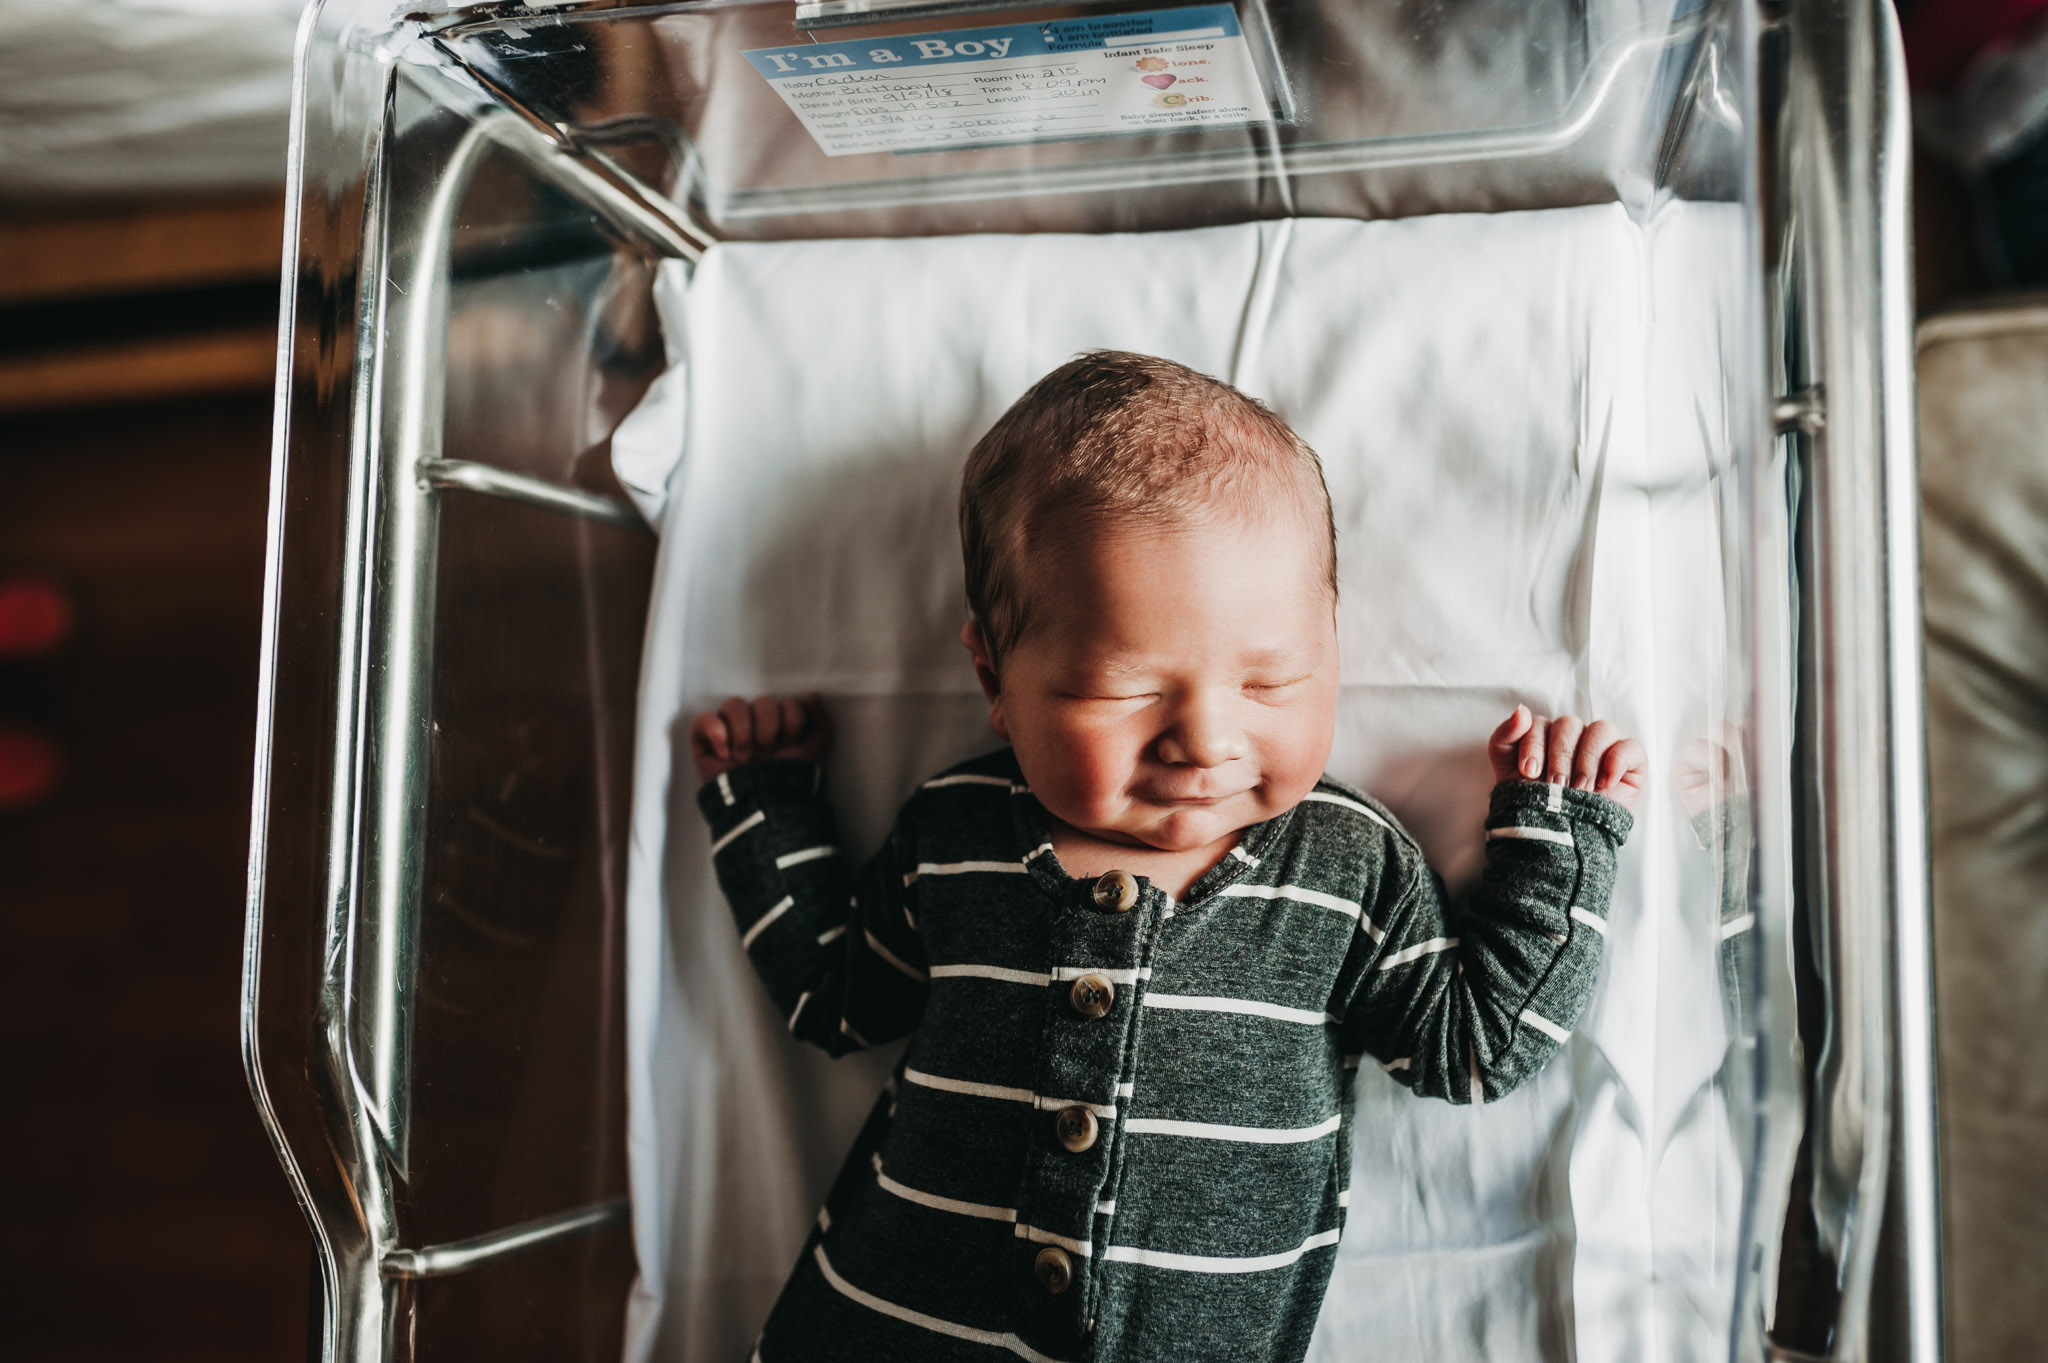 Newborn baby boy in Akron area hospital bassinet smiling in his sleep.